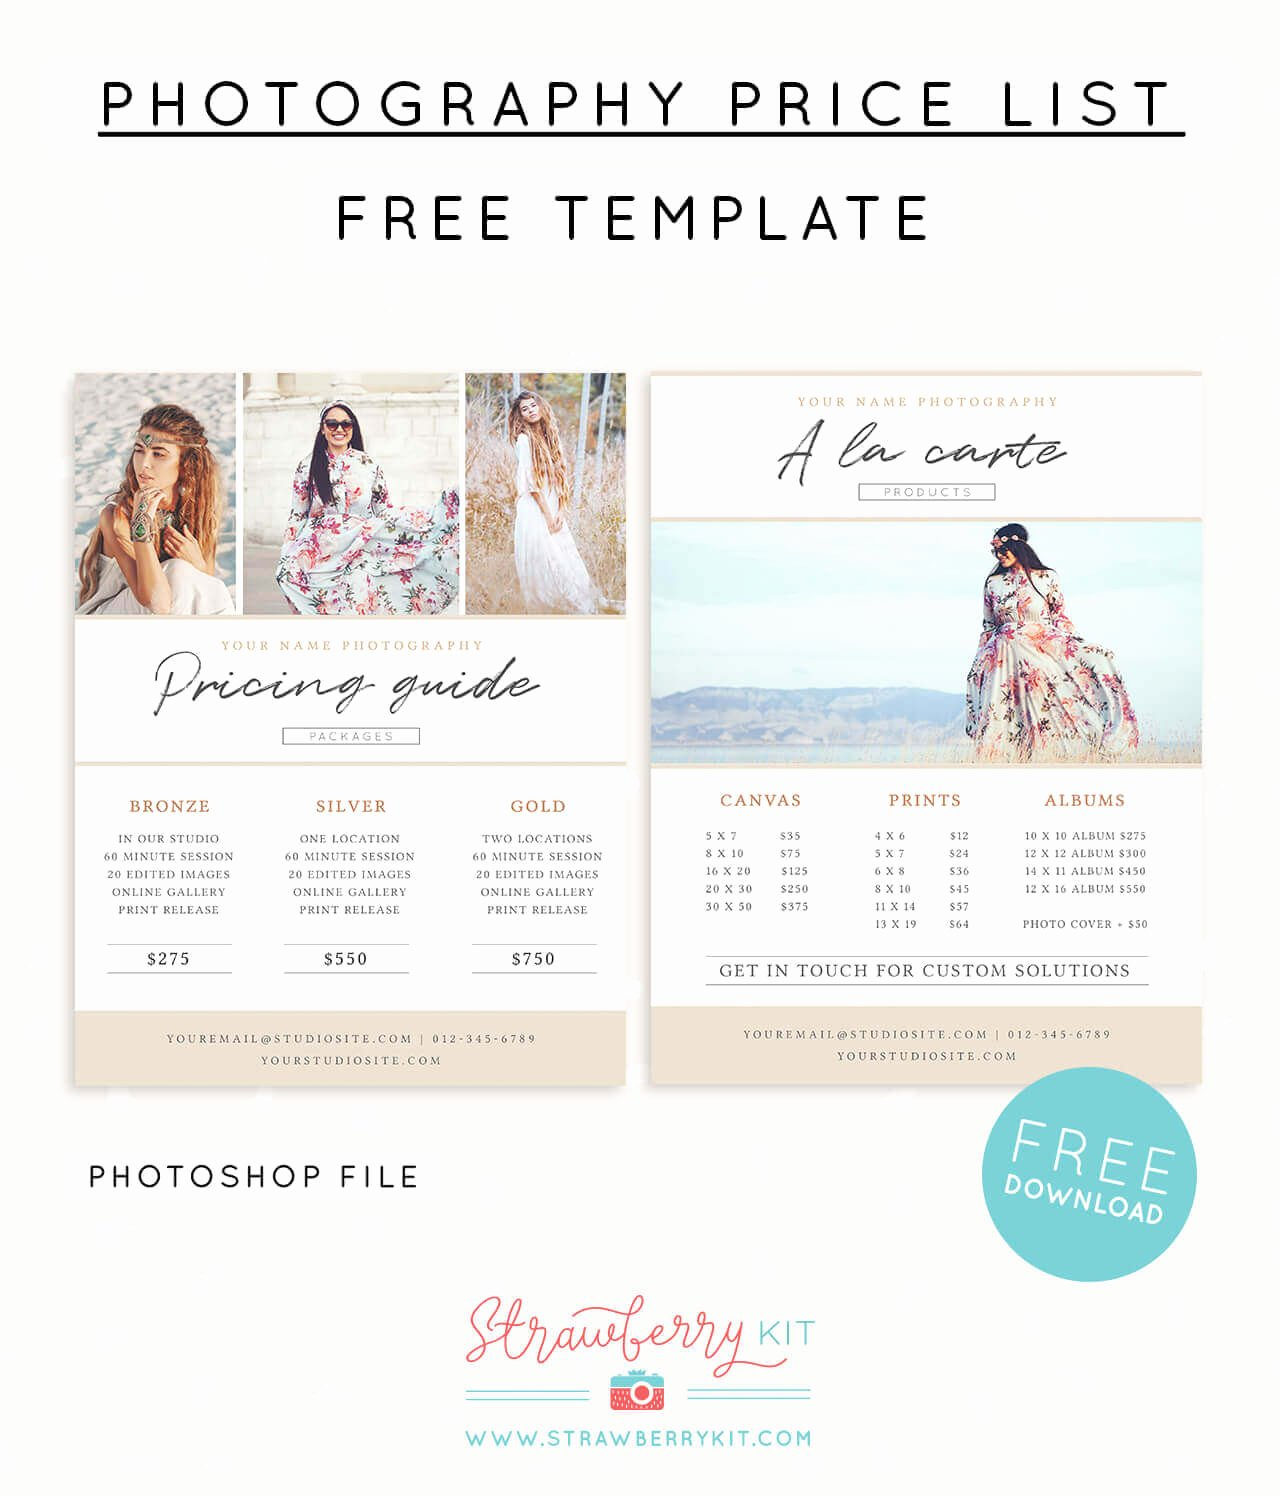 Photography Price List Template Free Beautiful Grapher Price List Template Free